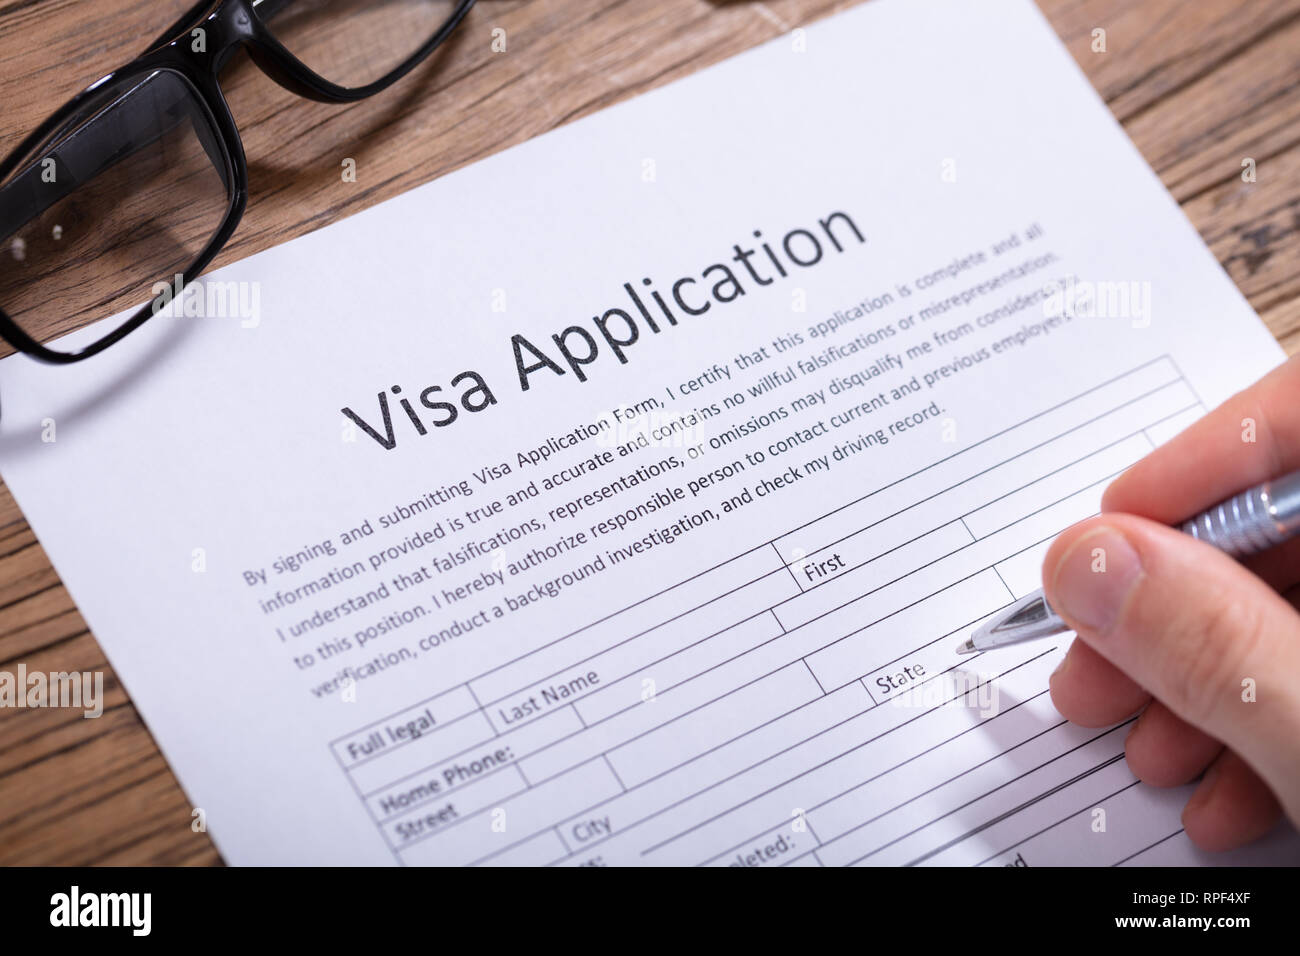 Close-up Of A Man's Hand Filling Visa Application Form With Pen Stock Photo